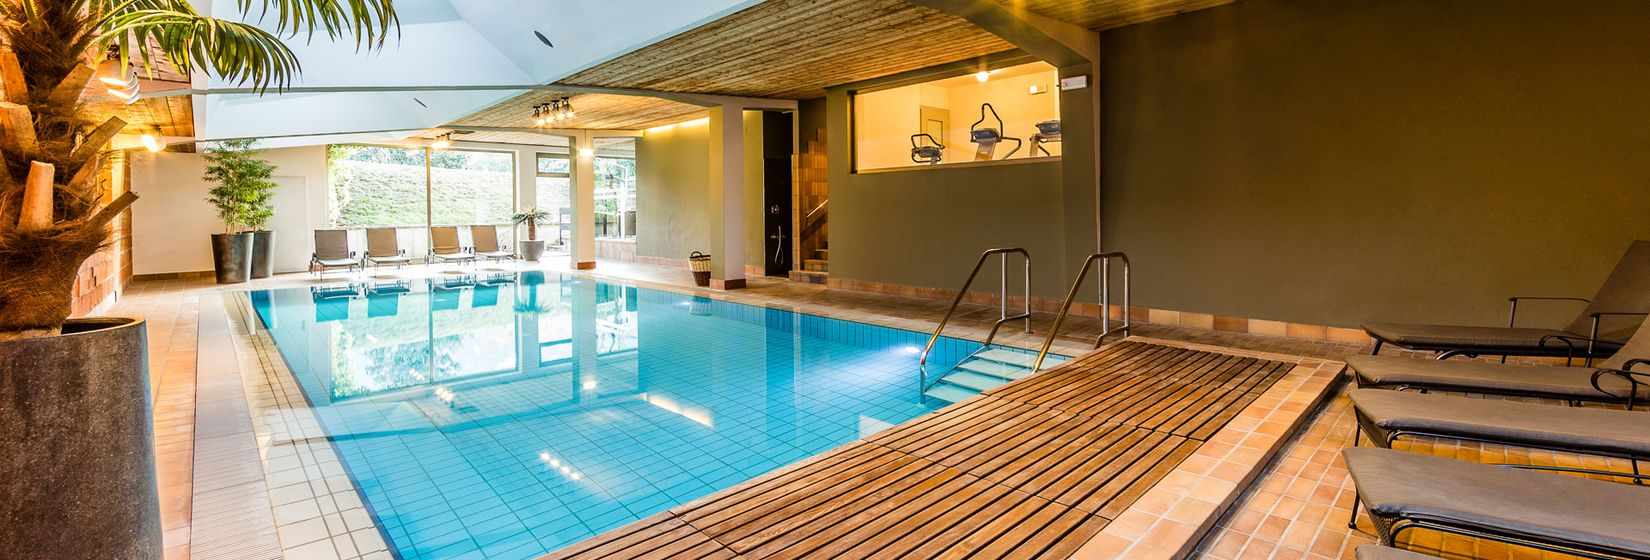 indoor swimming pool merano